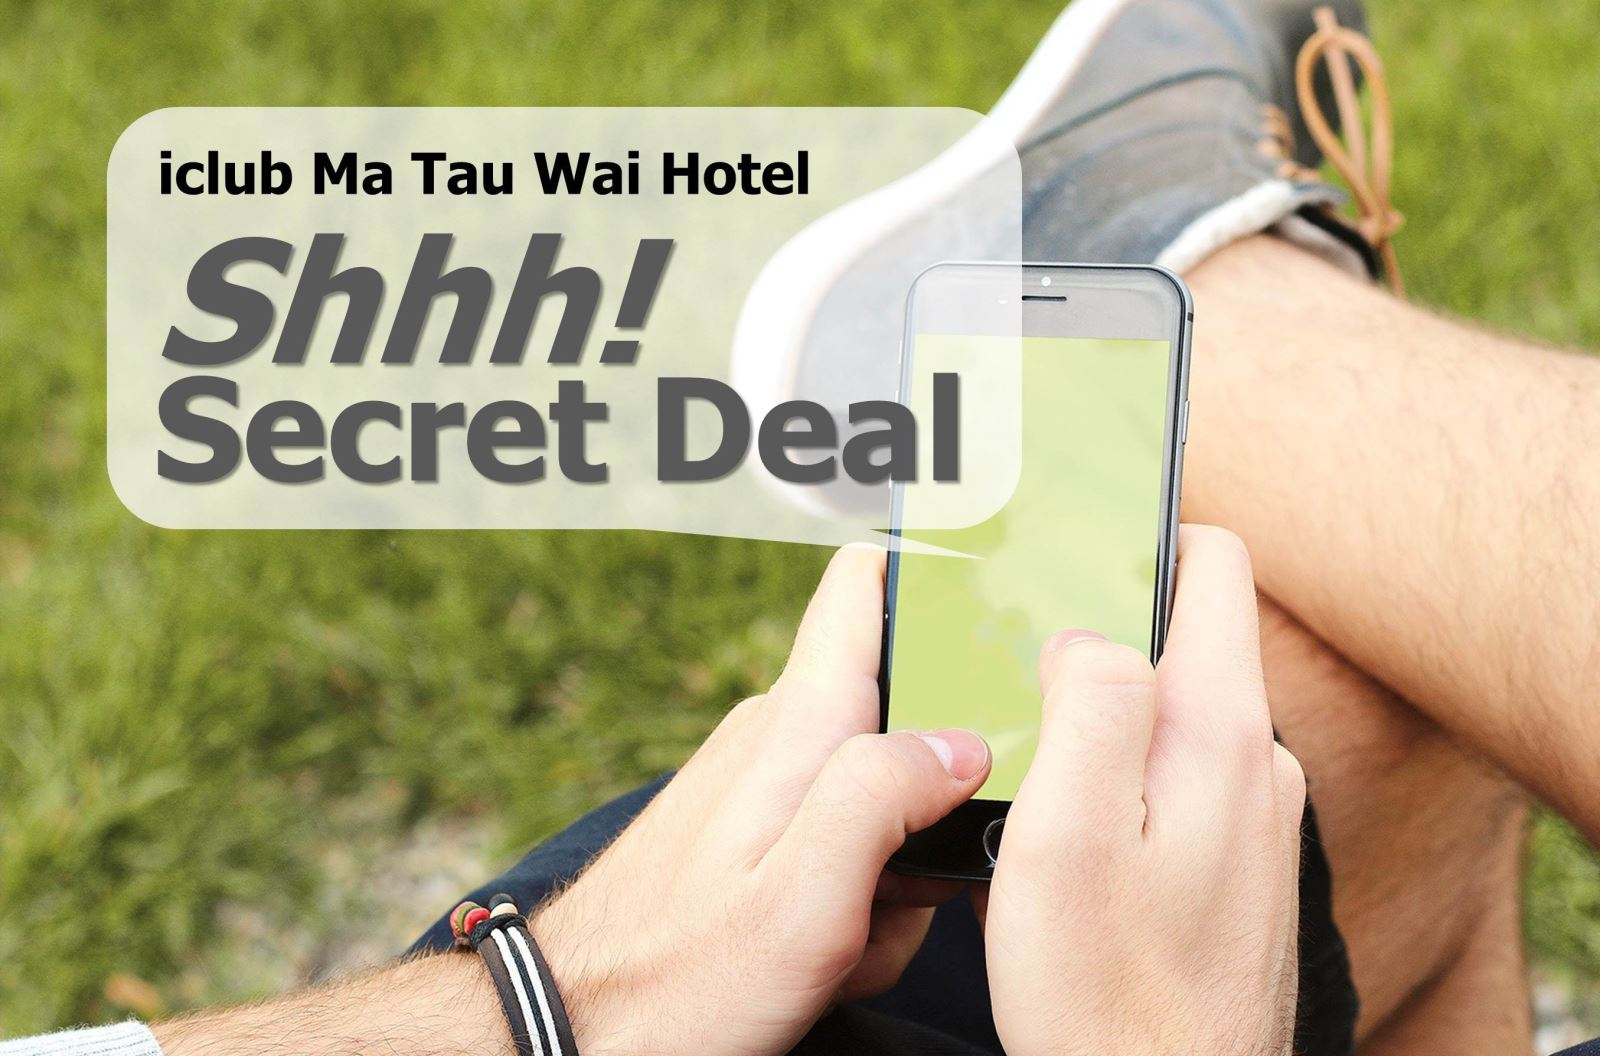 iclub Ma Tau Wai Hotel – Shhh! Secret Deal